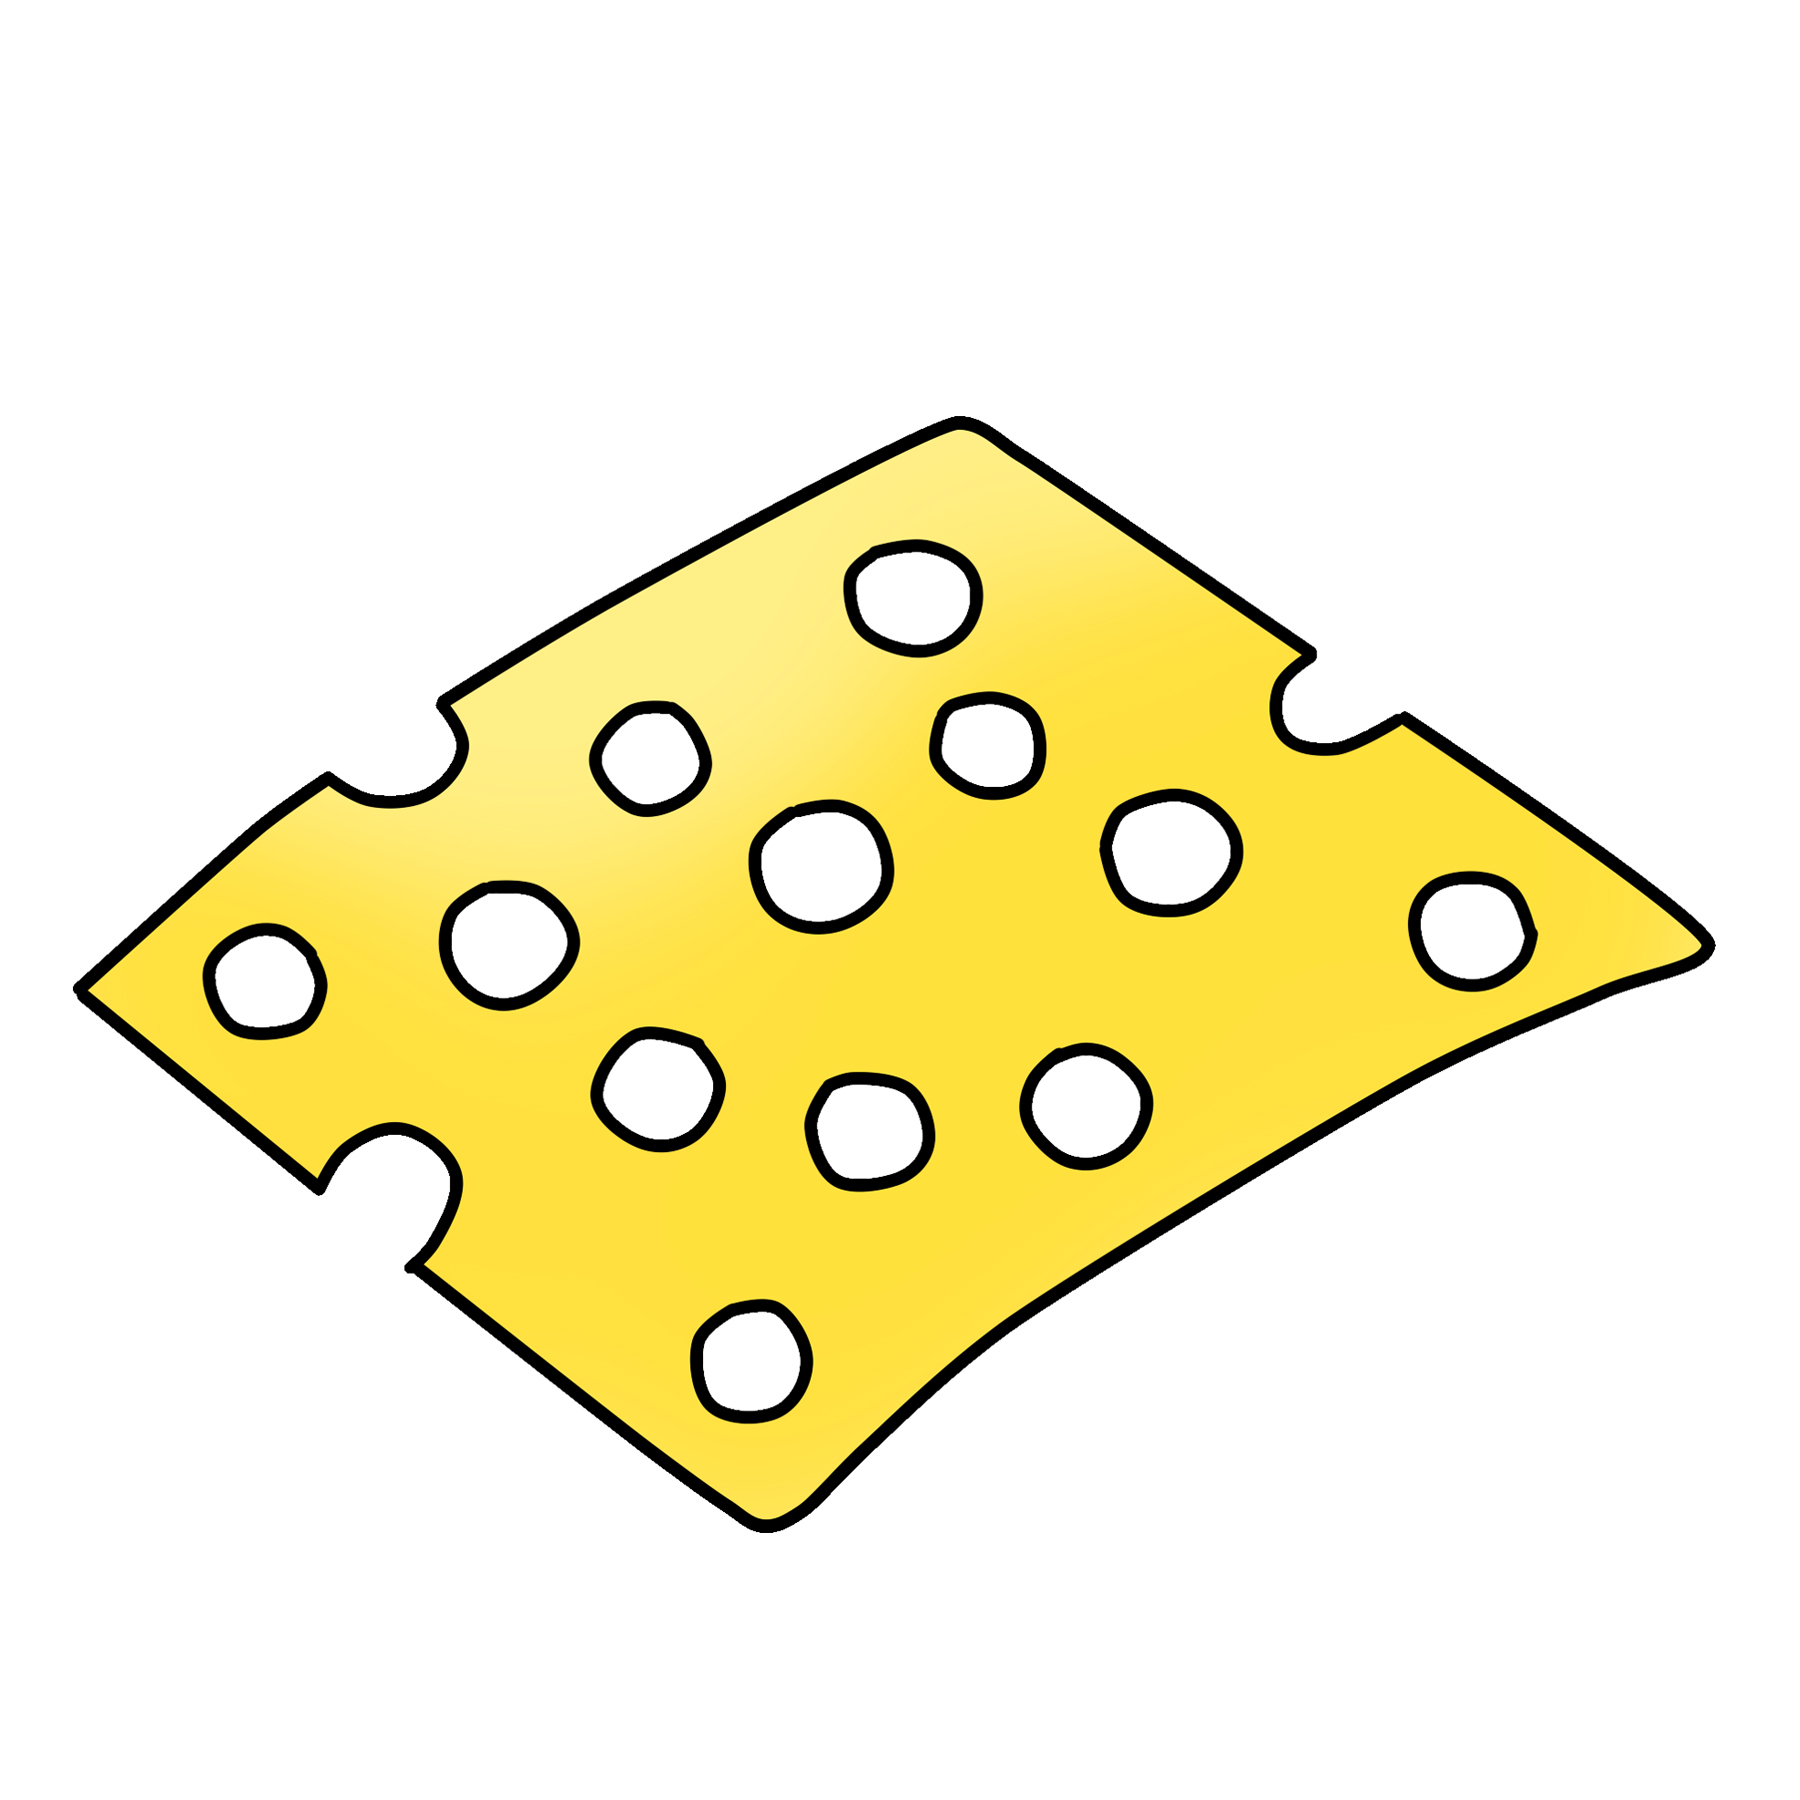 Swiss cheese pictures clipart vector transparent library Swiss Cheese Clipart Download Graphic | Clipart 4 School vector transparent library